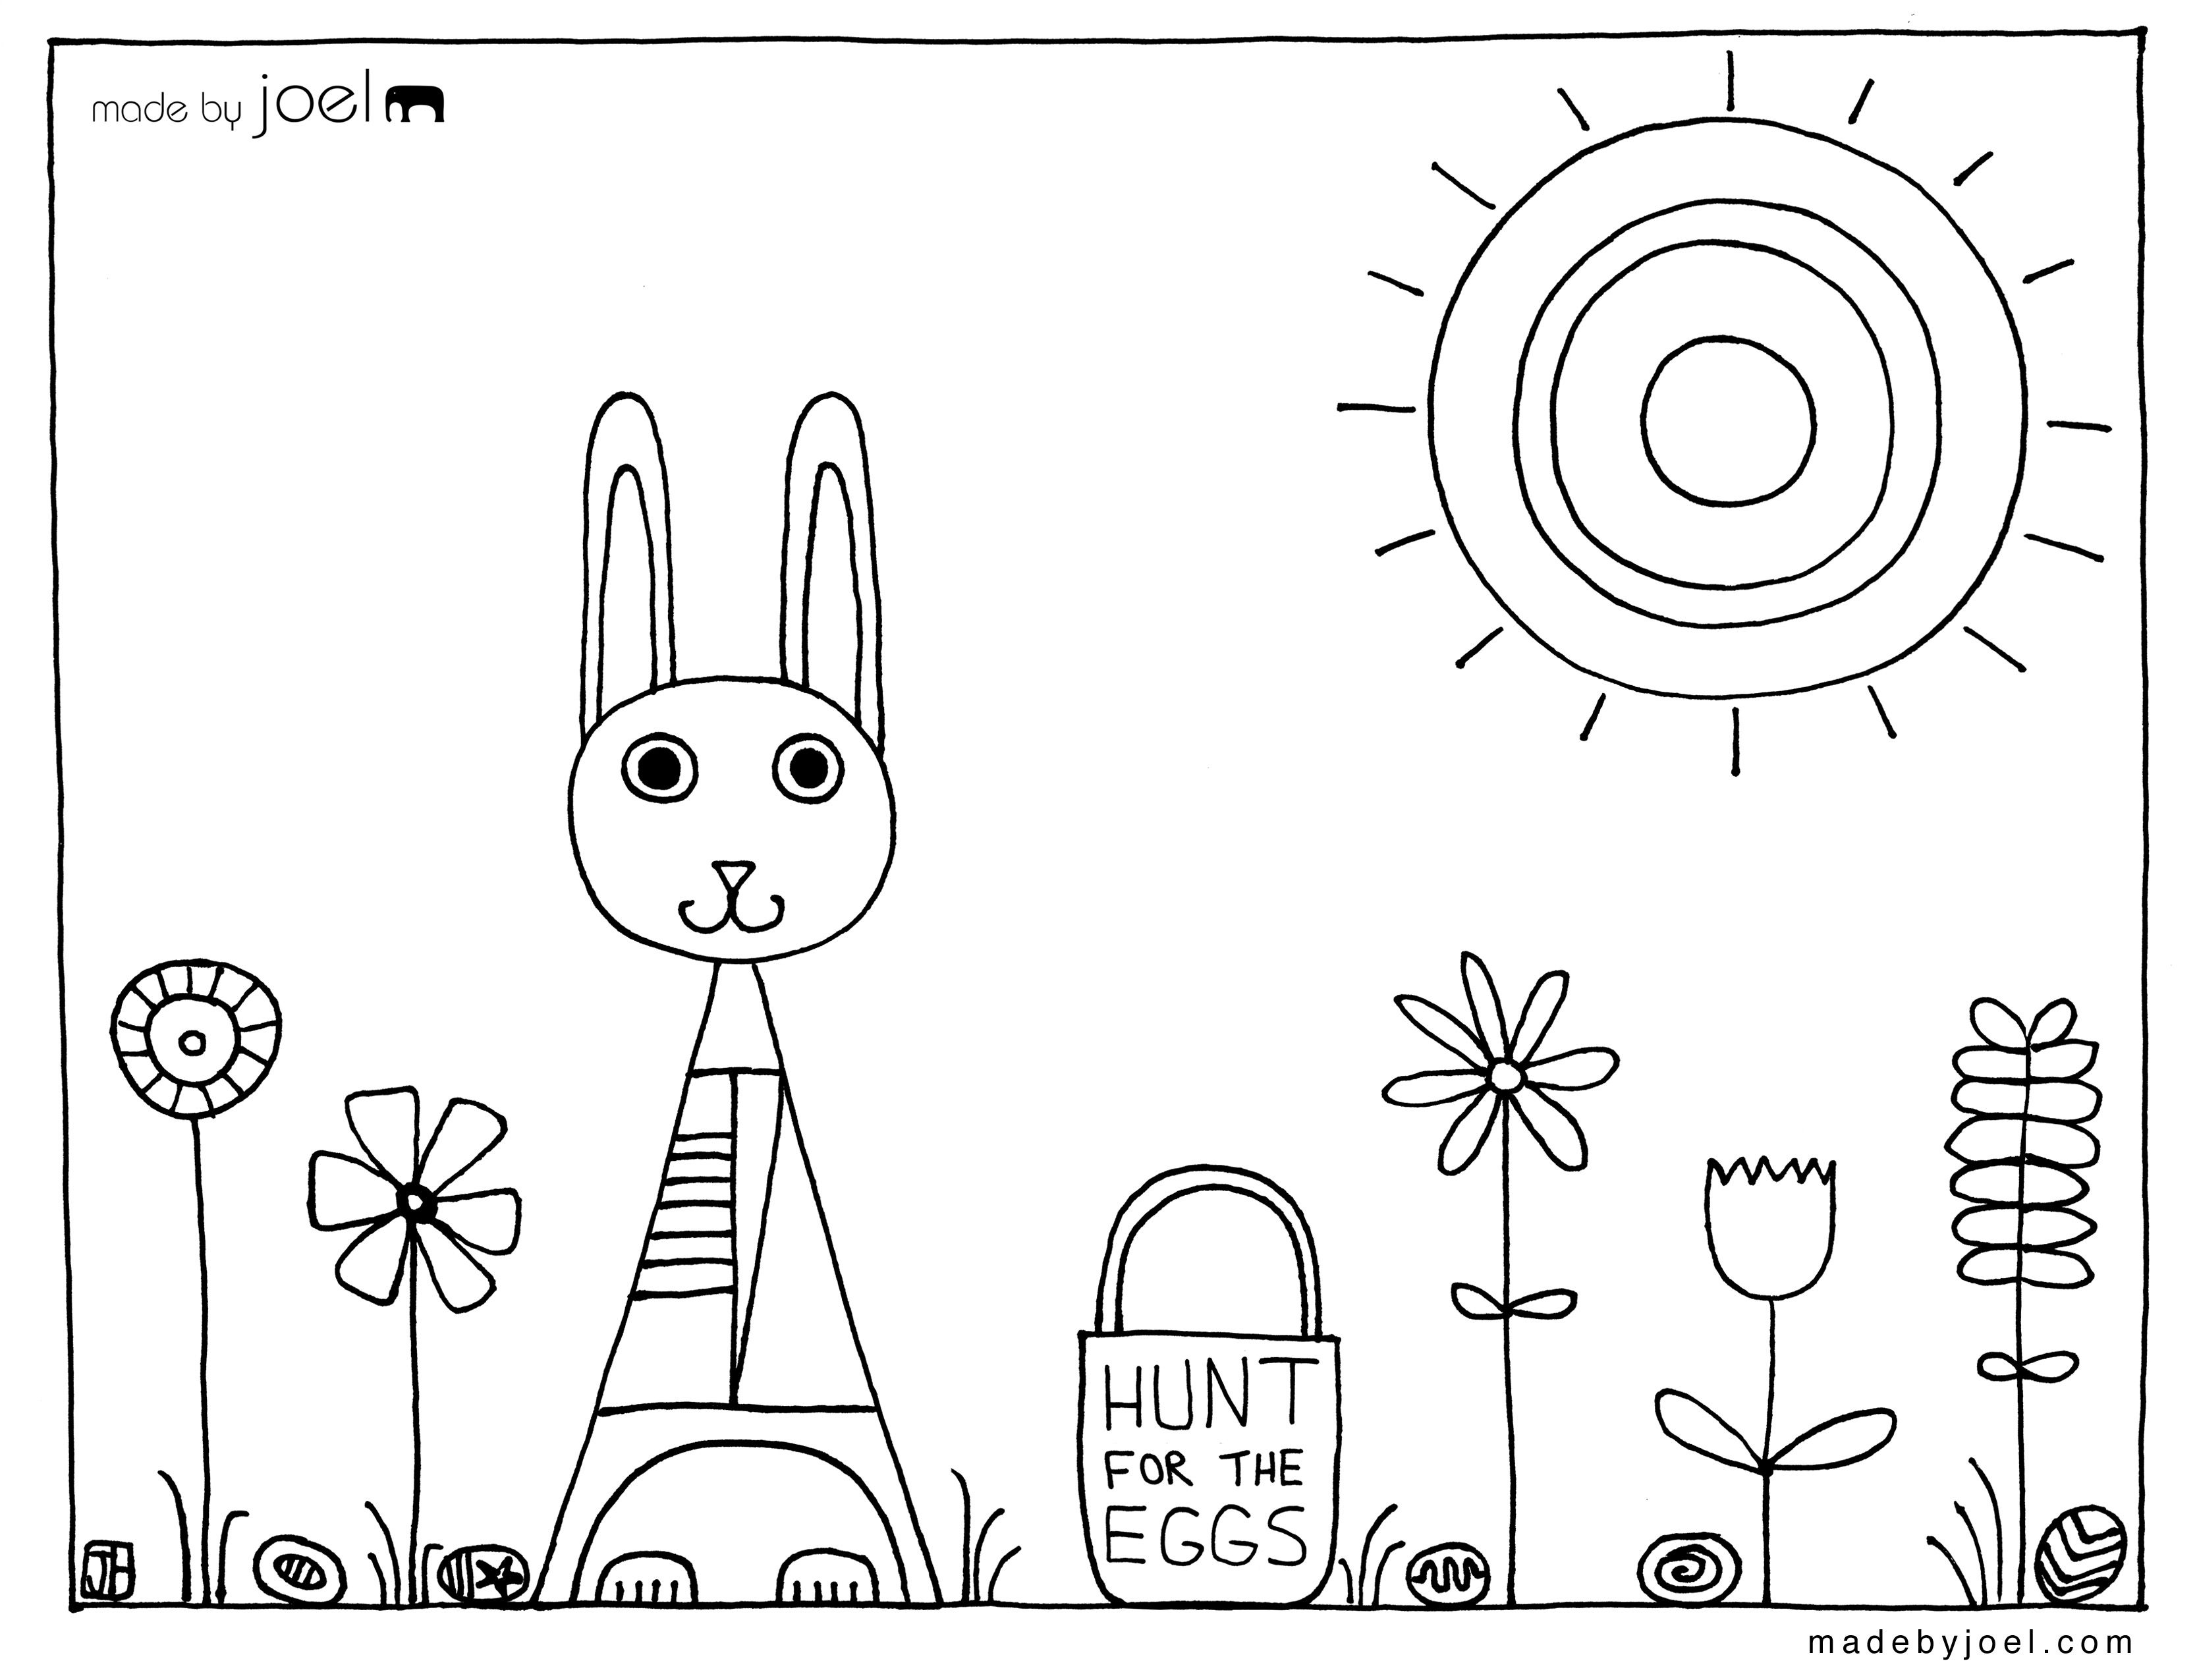 Made by Joel » #Easter Coloring Sheet – Hunt for the Eggs ...